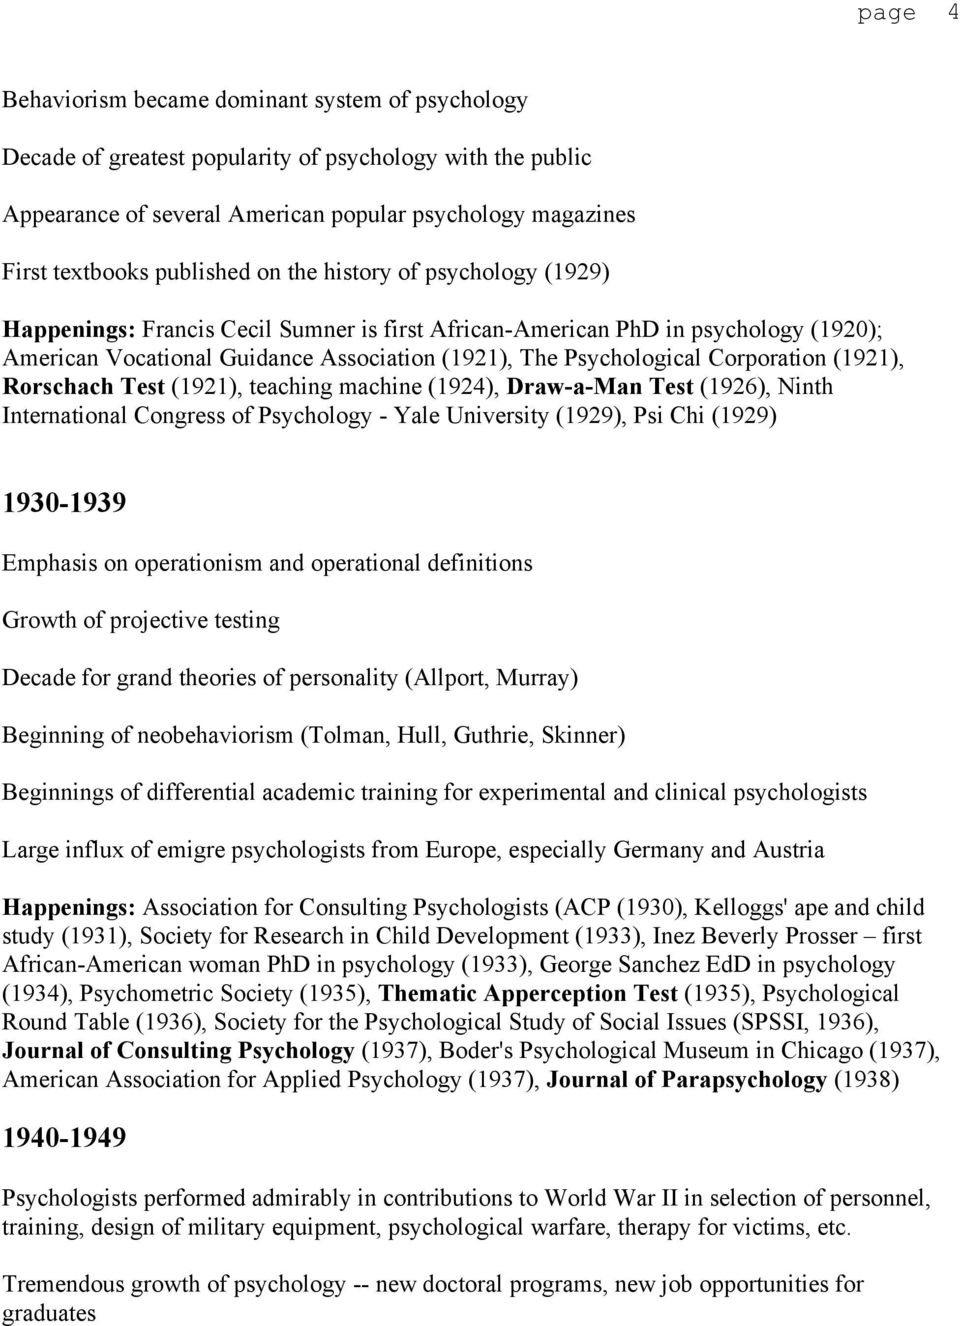 Corporation (1921), Rorschach Test (1921), teaching machine (1924), Draw-a-Man Test (1926), Ninth International Congress of Psychology - Yale University (1929), Psi Chi (1929) 1930-1939 Emphasis on